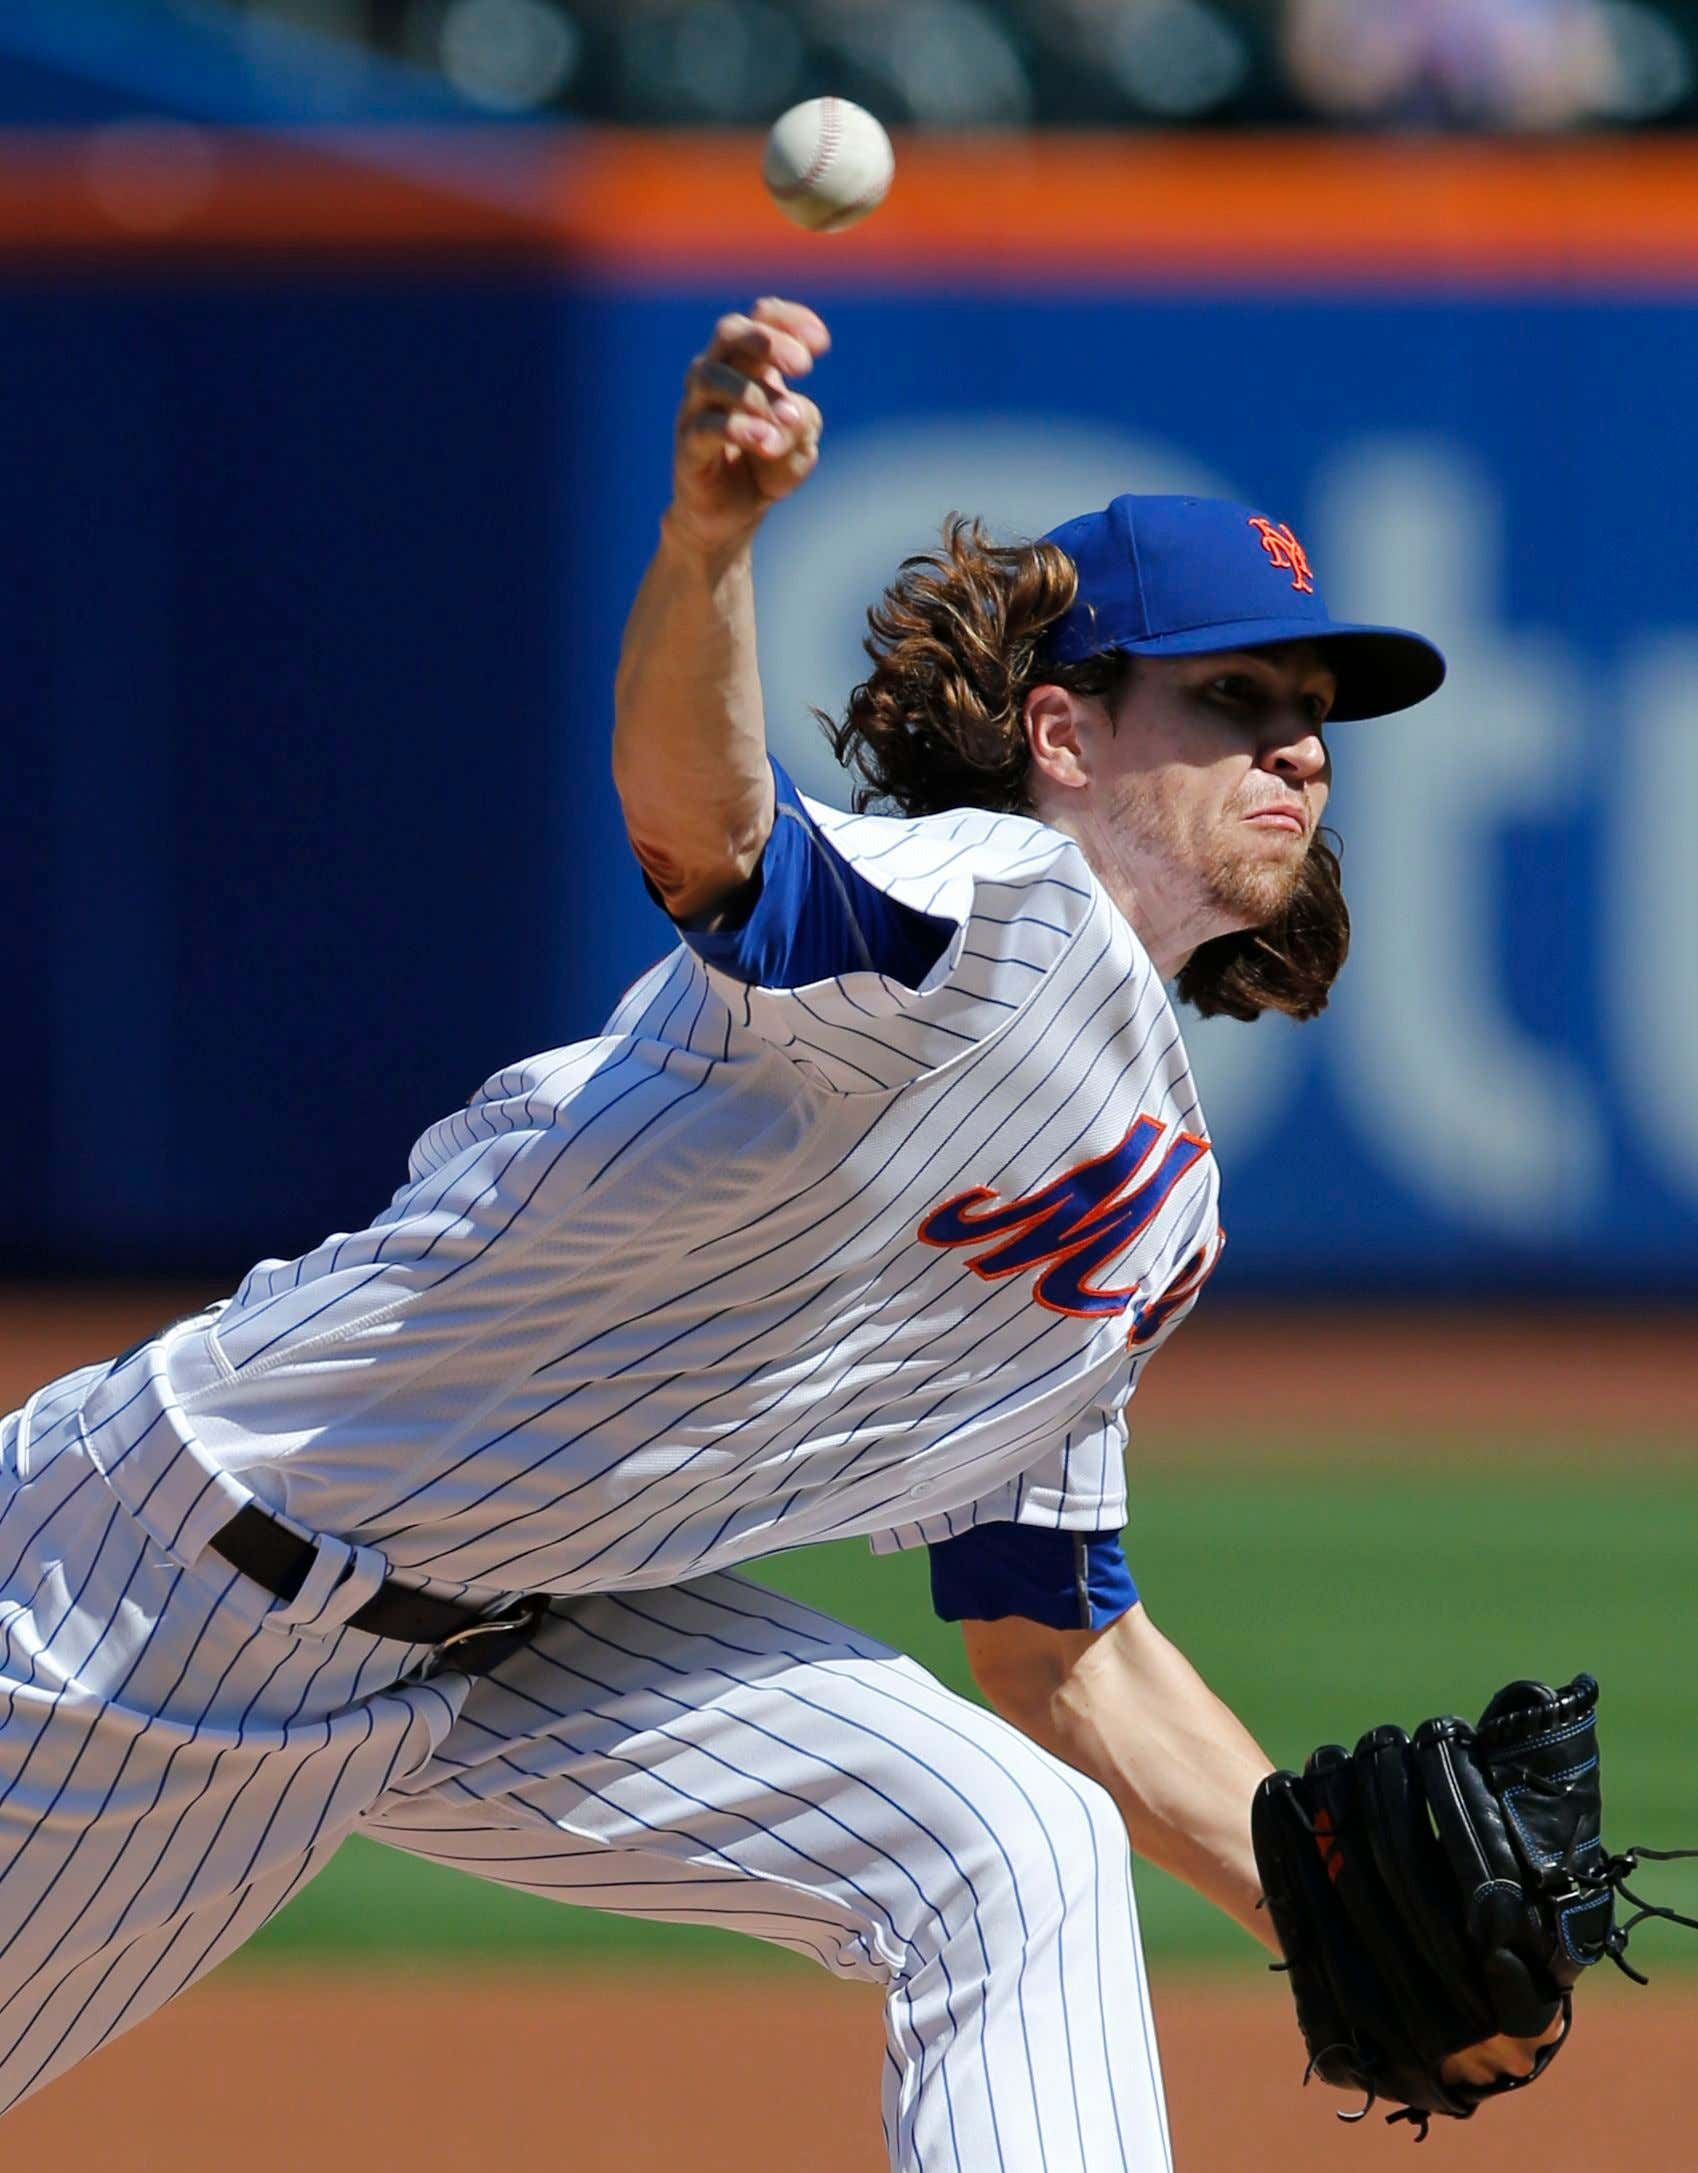 Jacob de Grom. New York Mets starting pitcher Jacob deGrom delivers during the first inning of a baseball game against the Washington Nationals, in New York